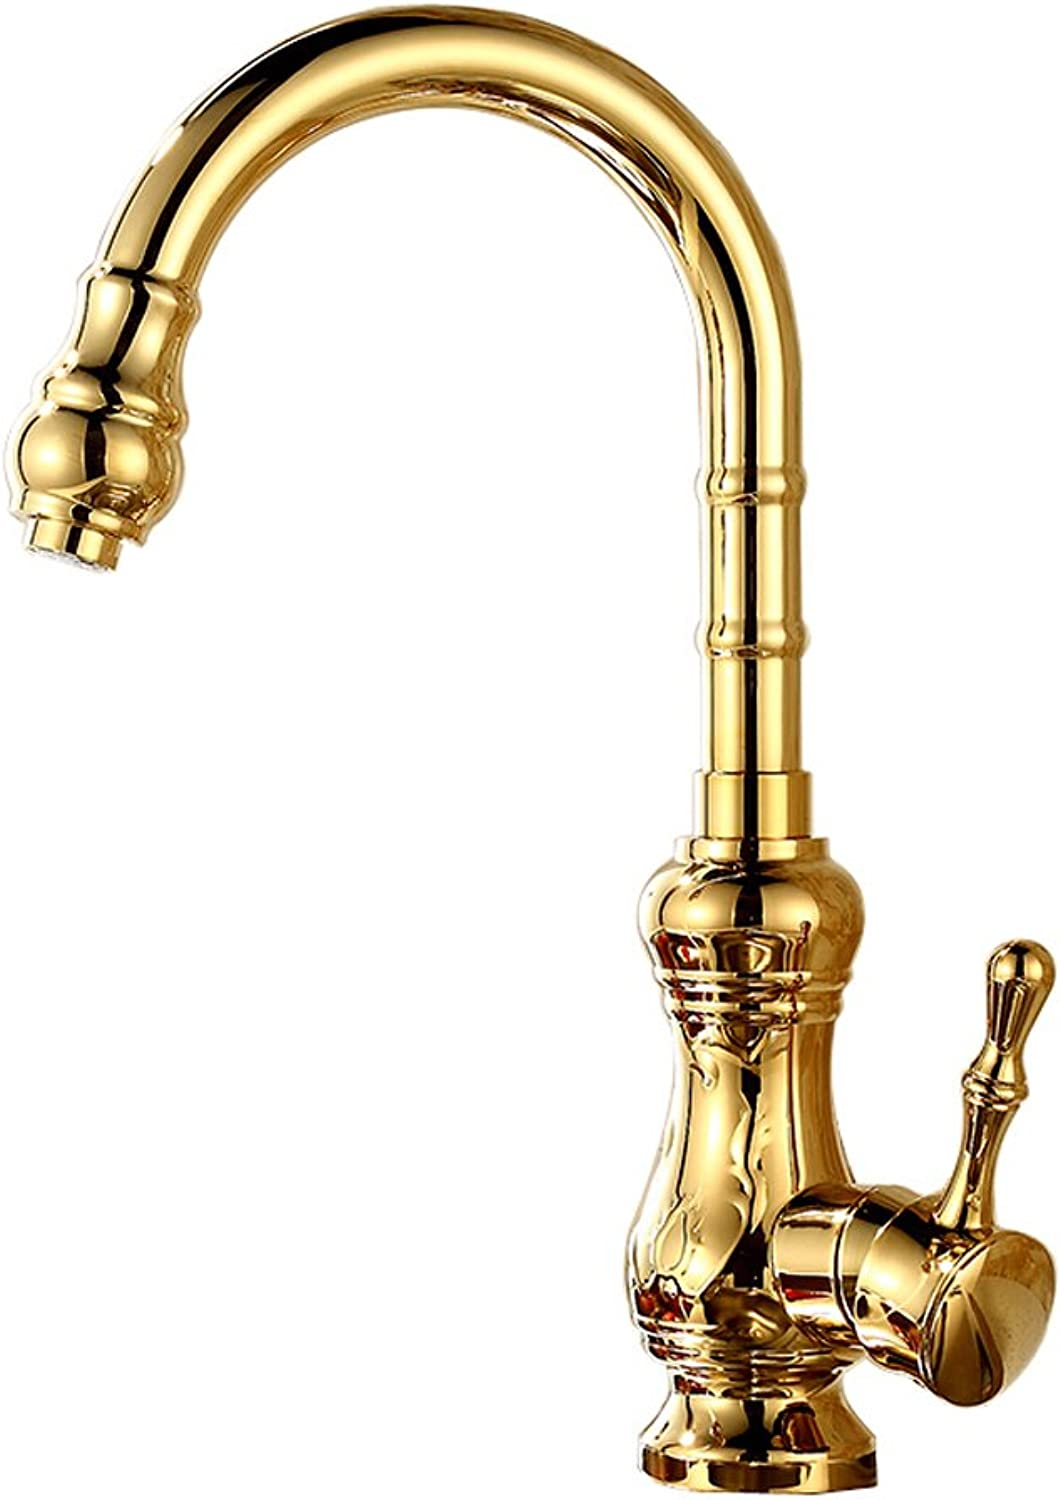 IBalody Antique gold Full Copper Hot and Cold Faucet Taps Retro Kitchen Sink Faucets Vintage 360° Swivel Wash Basin Brass Mixer Tap